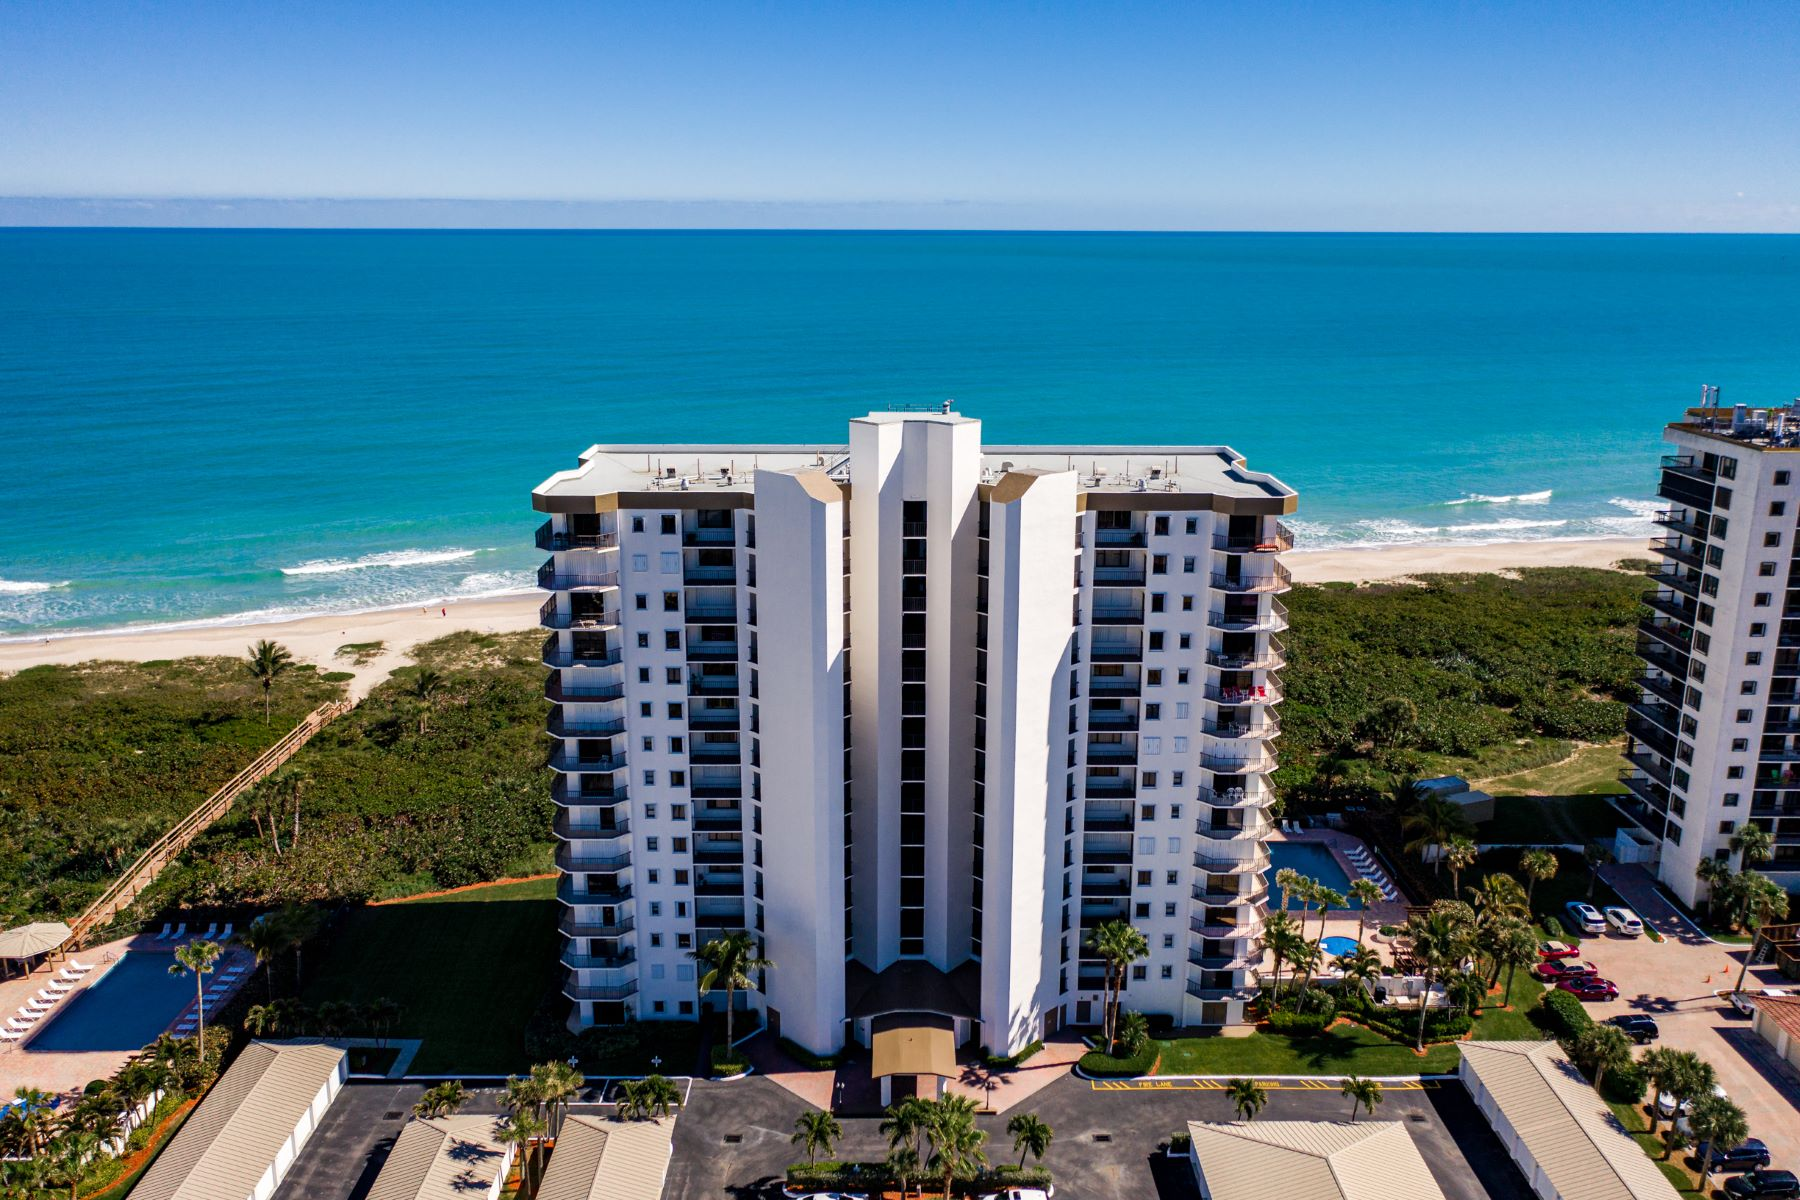 Property for Sale at 3120 N Highway A1A 503S Hutchinson Island, Florida 34949 United States